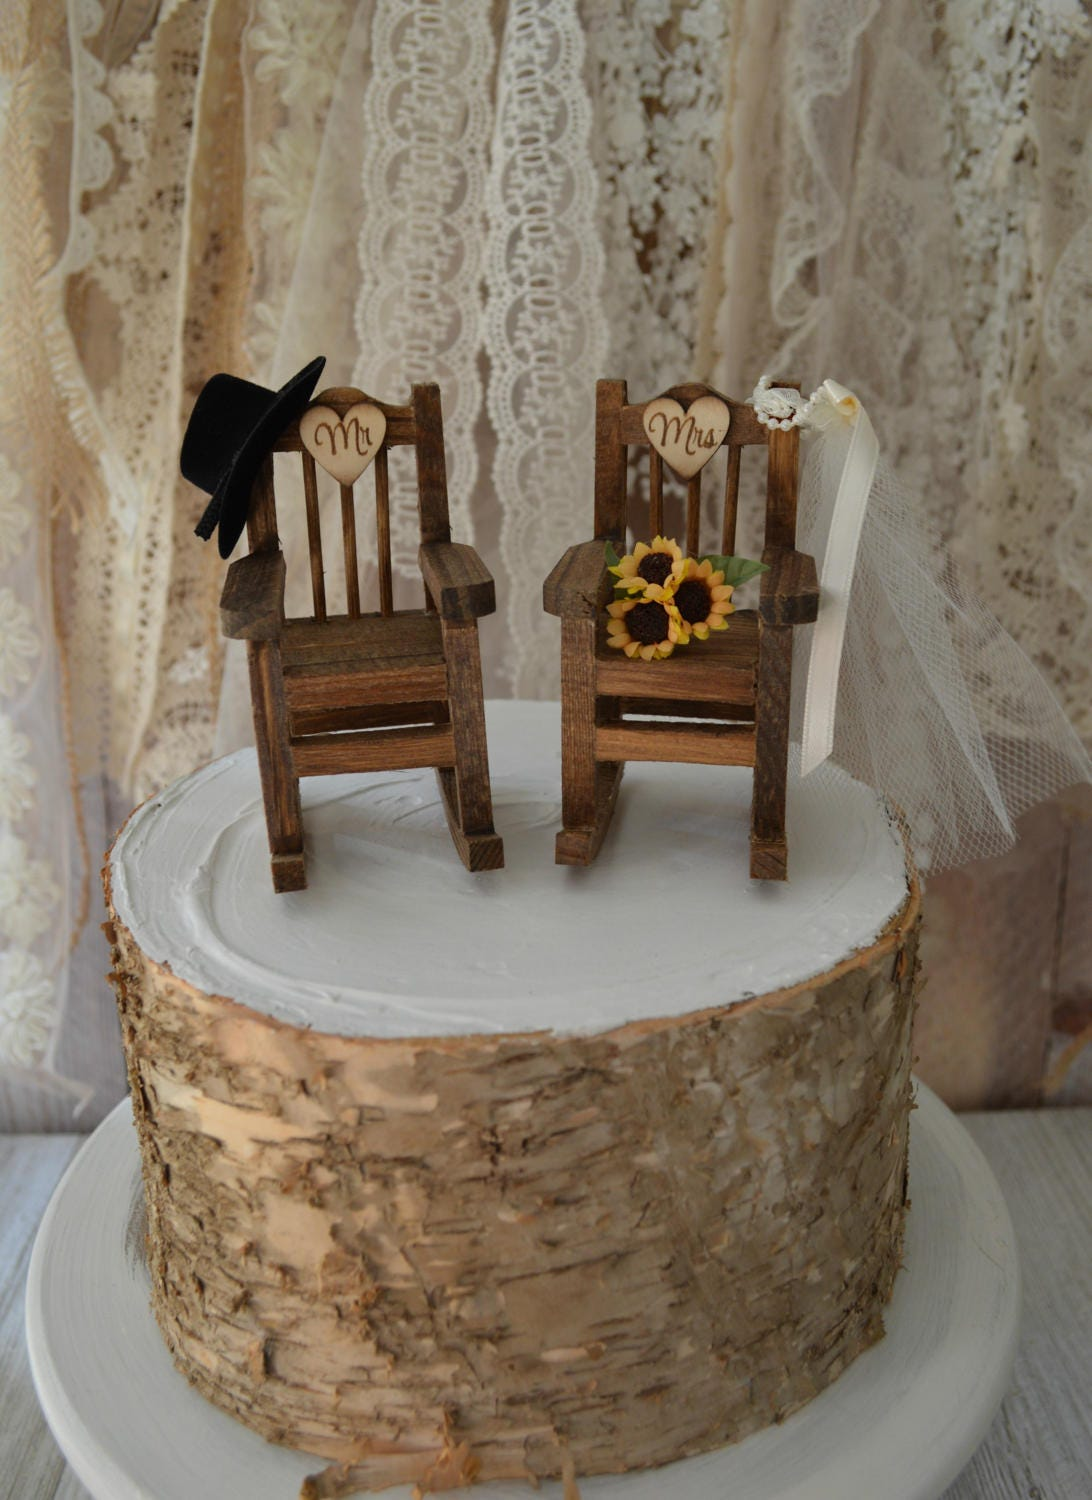 Rocking Chair With Cowboy Hat Sunflowers Cake Topper